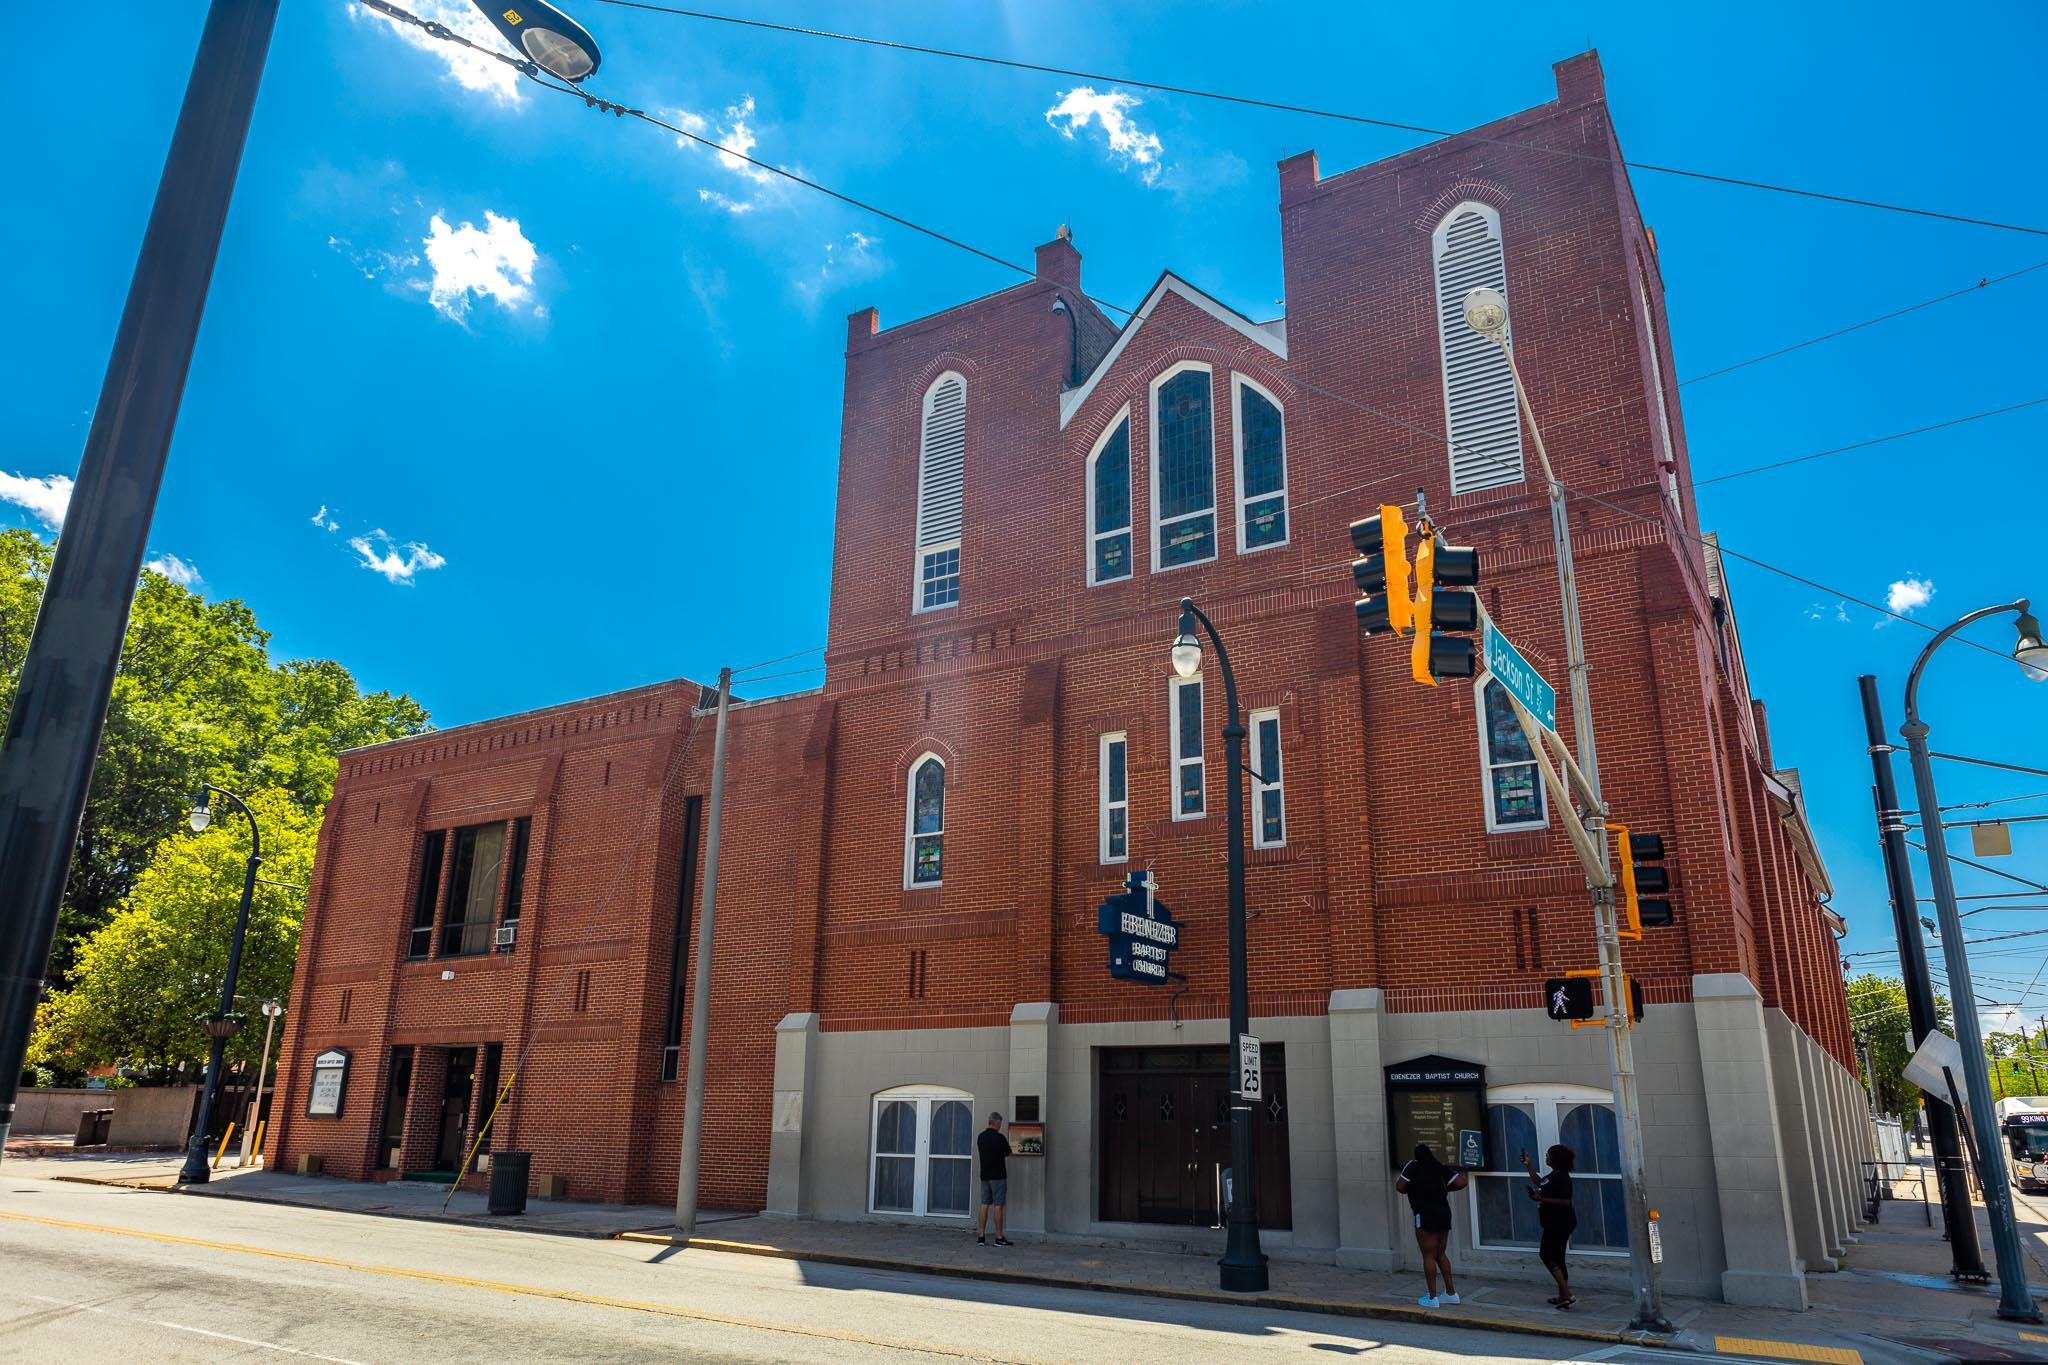 Ebenezer Baptist Church in Atlanta, GA